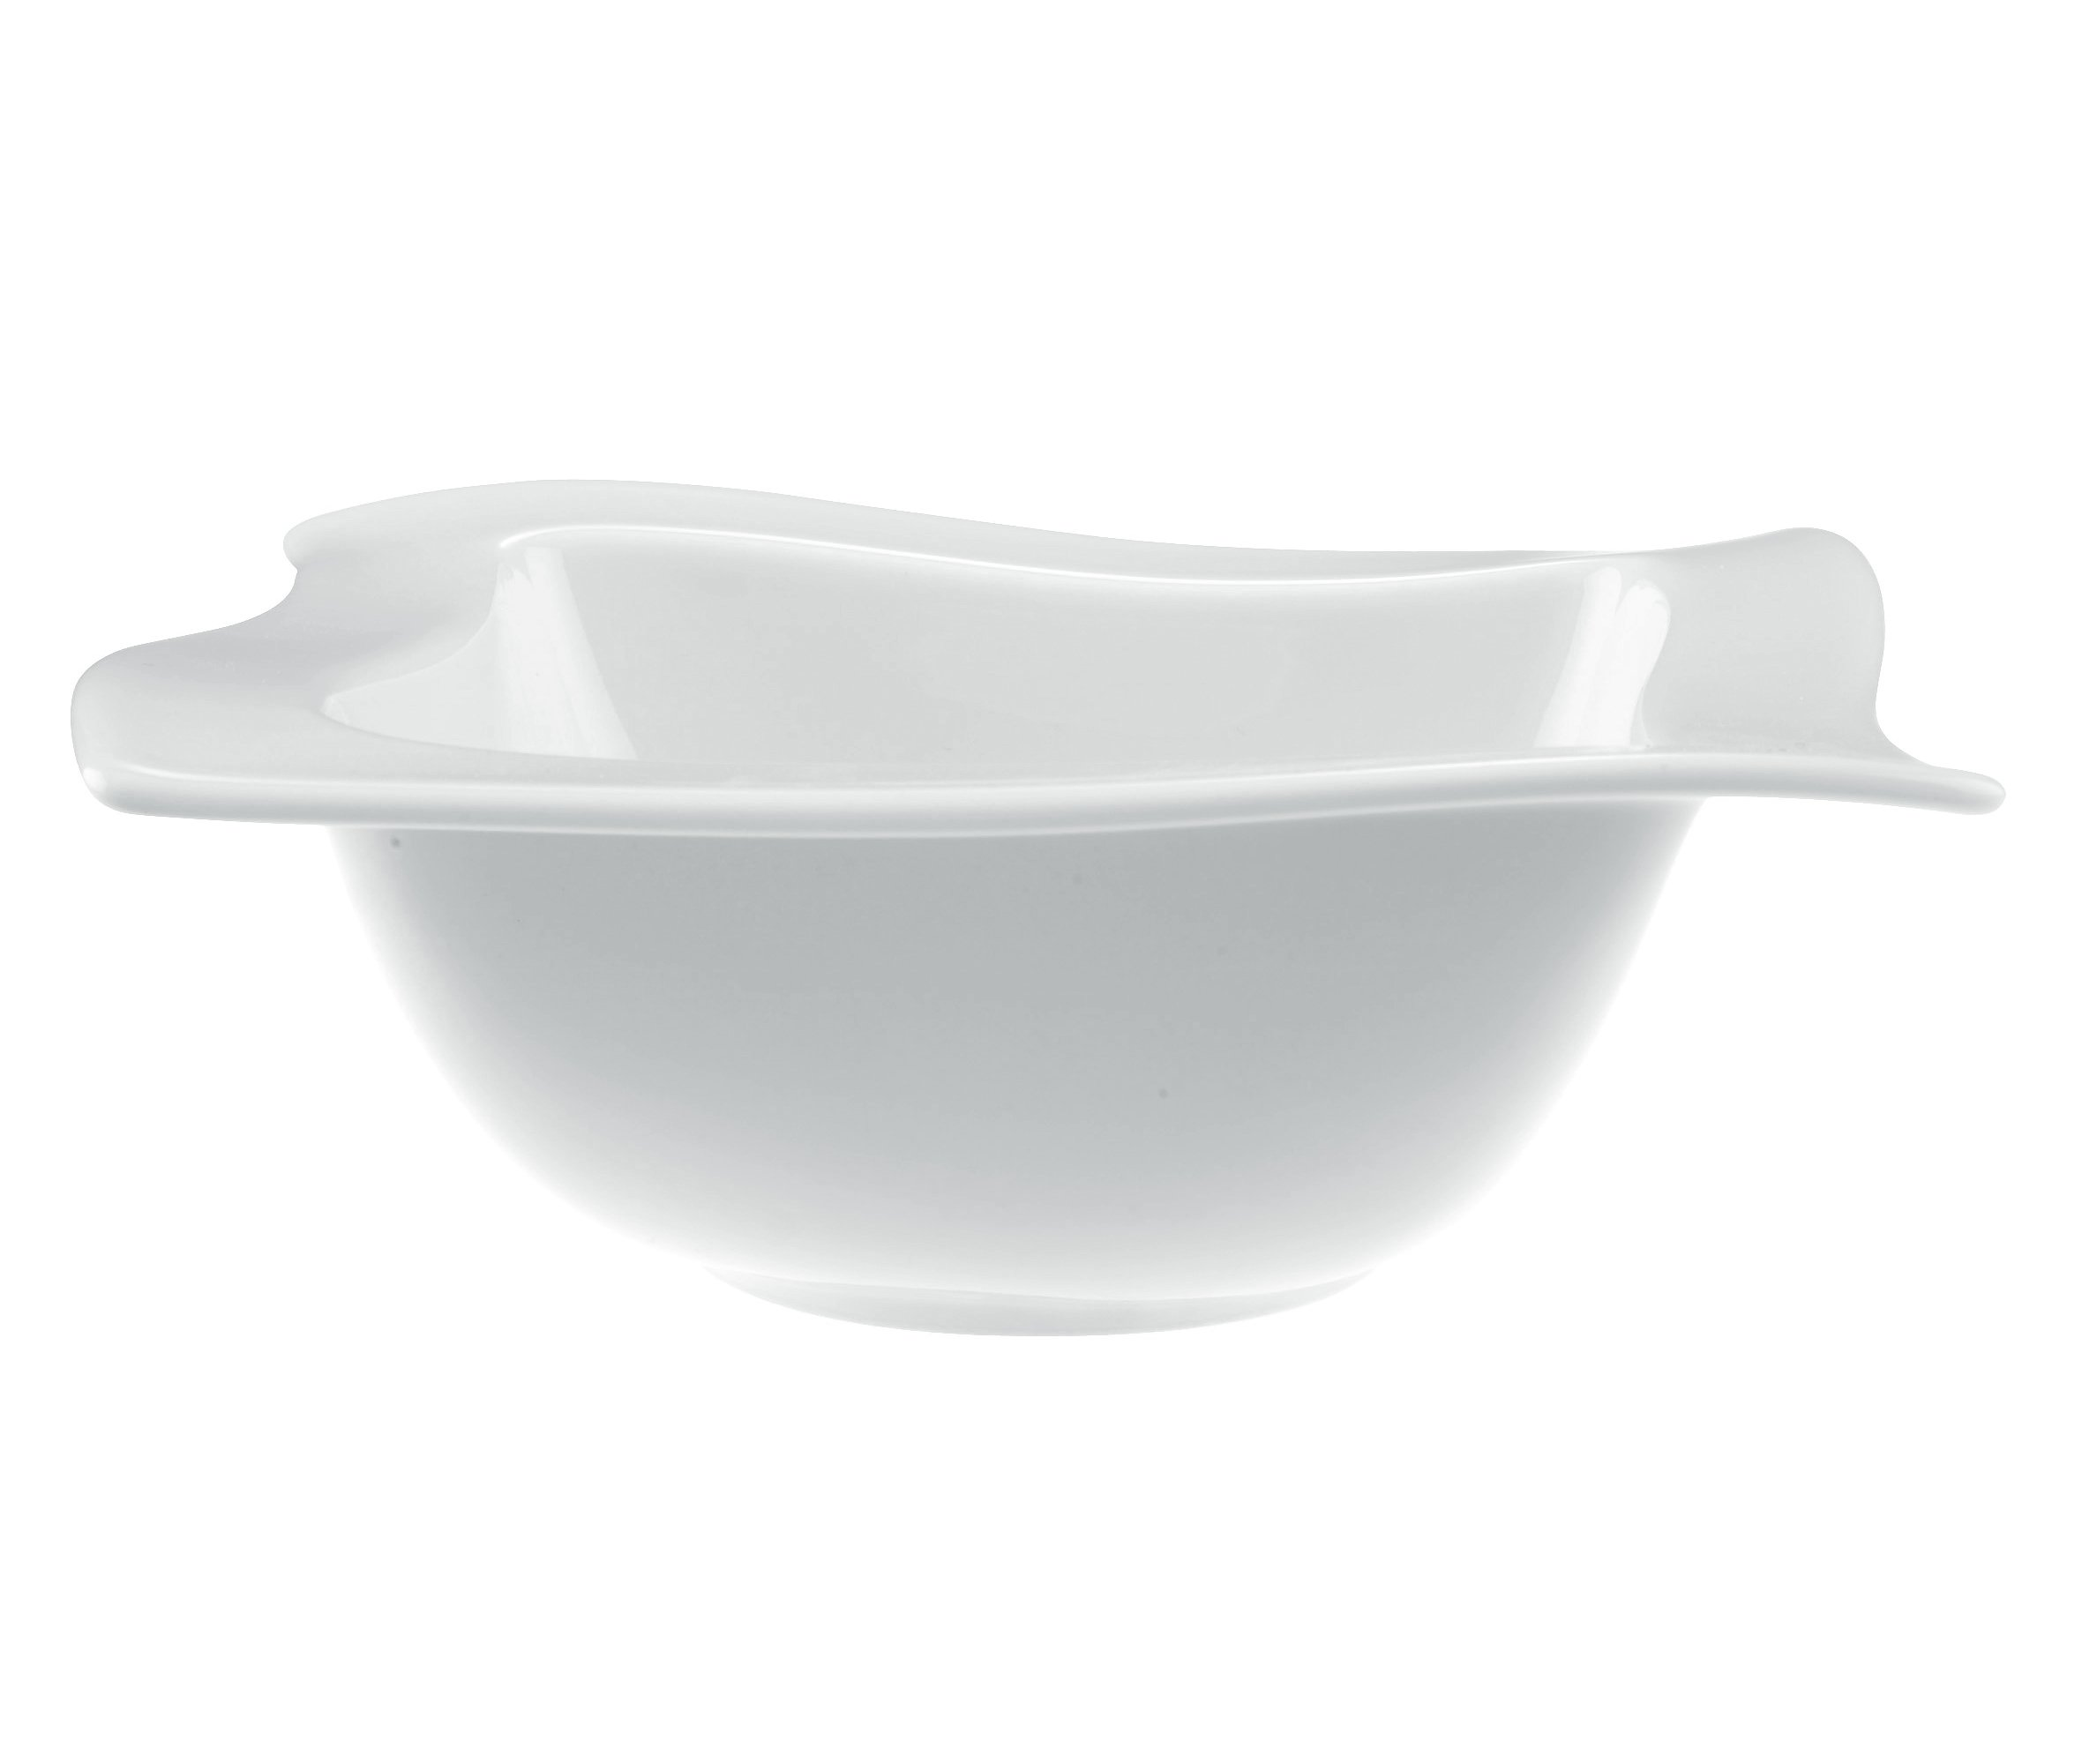 New Wave Bowl Set of 4 by Villeroy & Boch - 20 Ounces